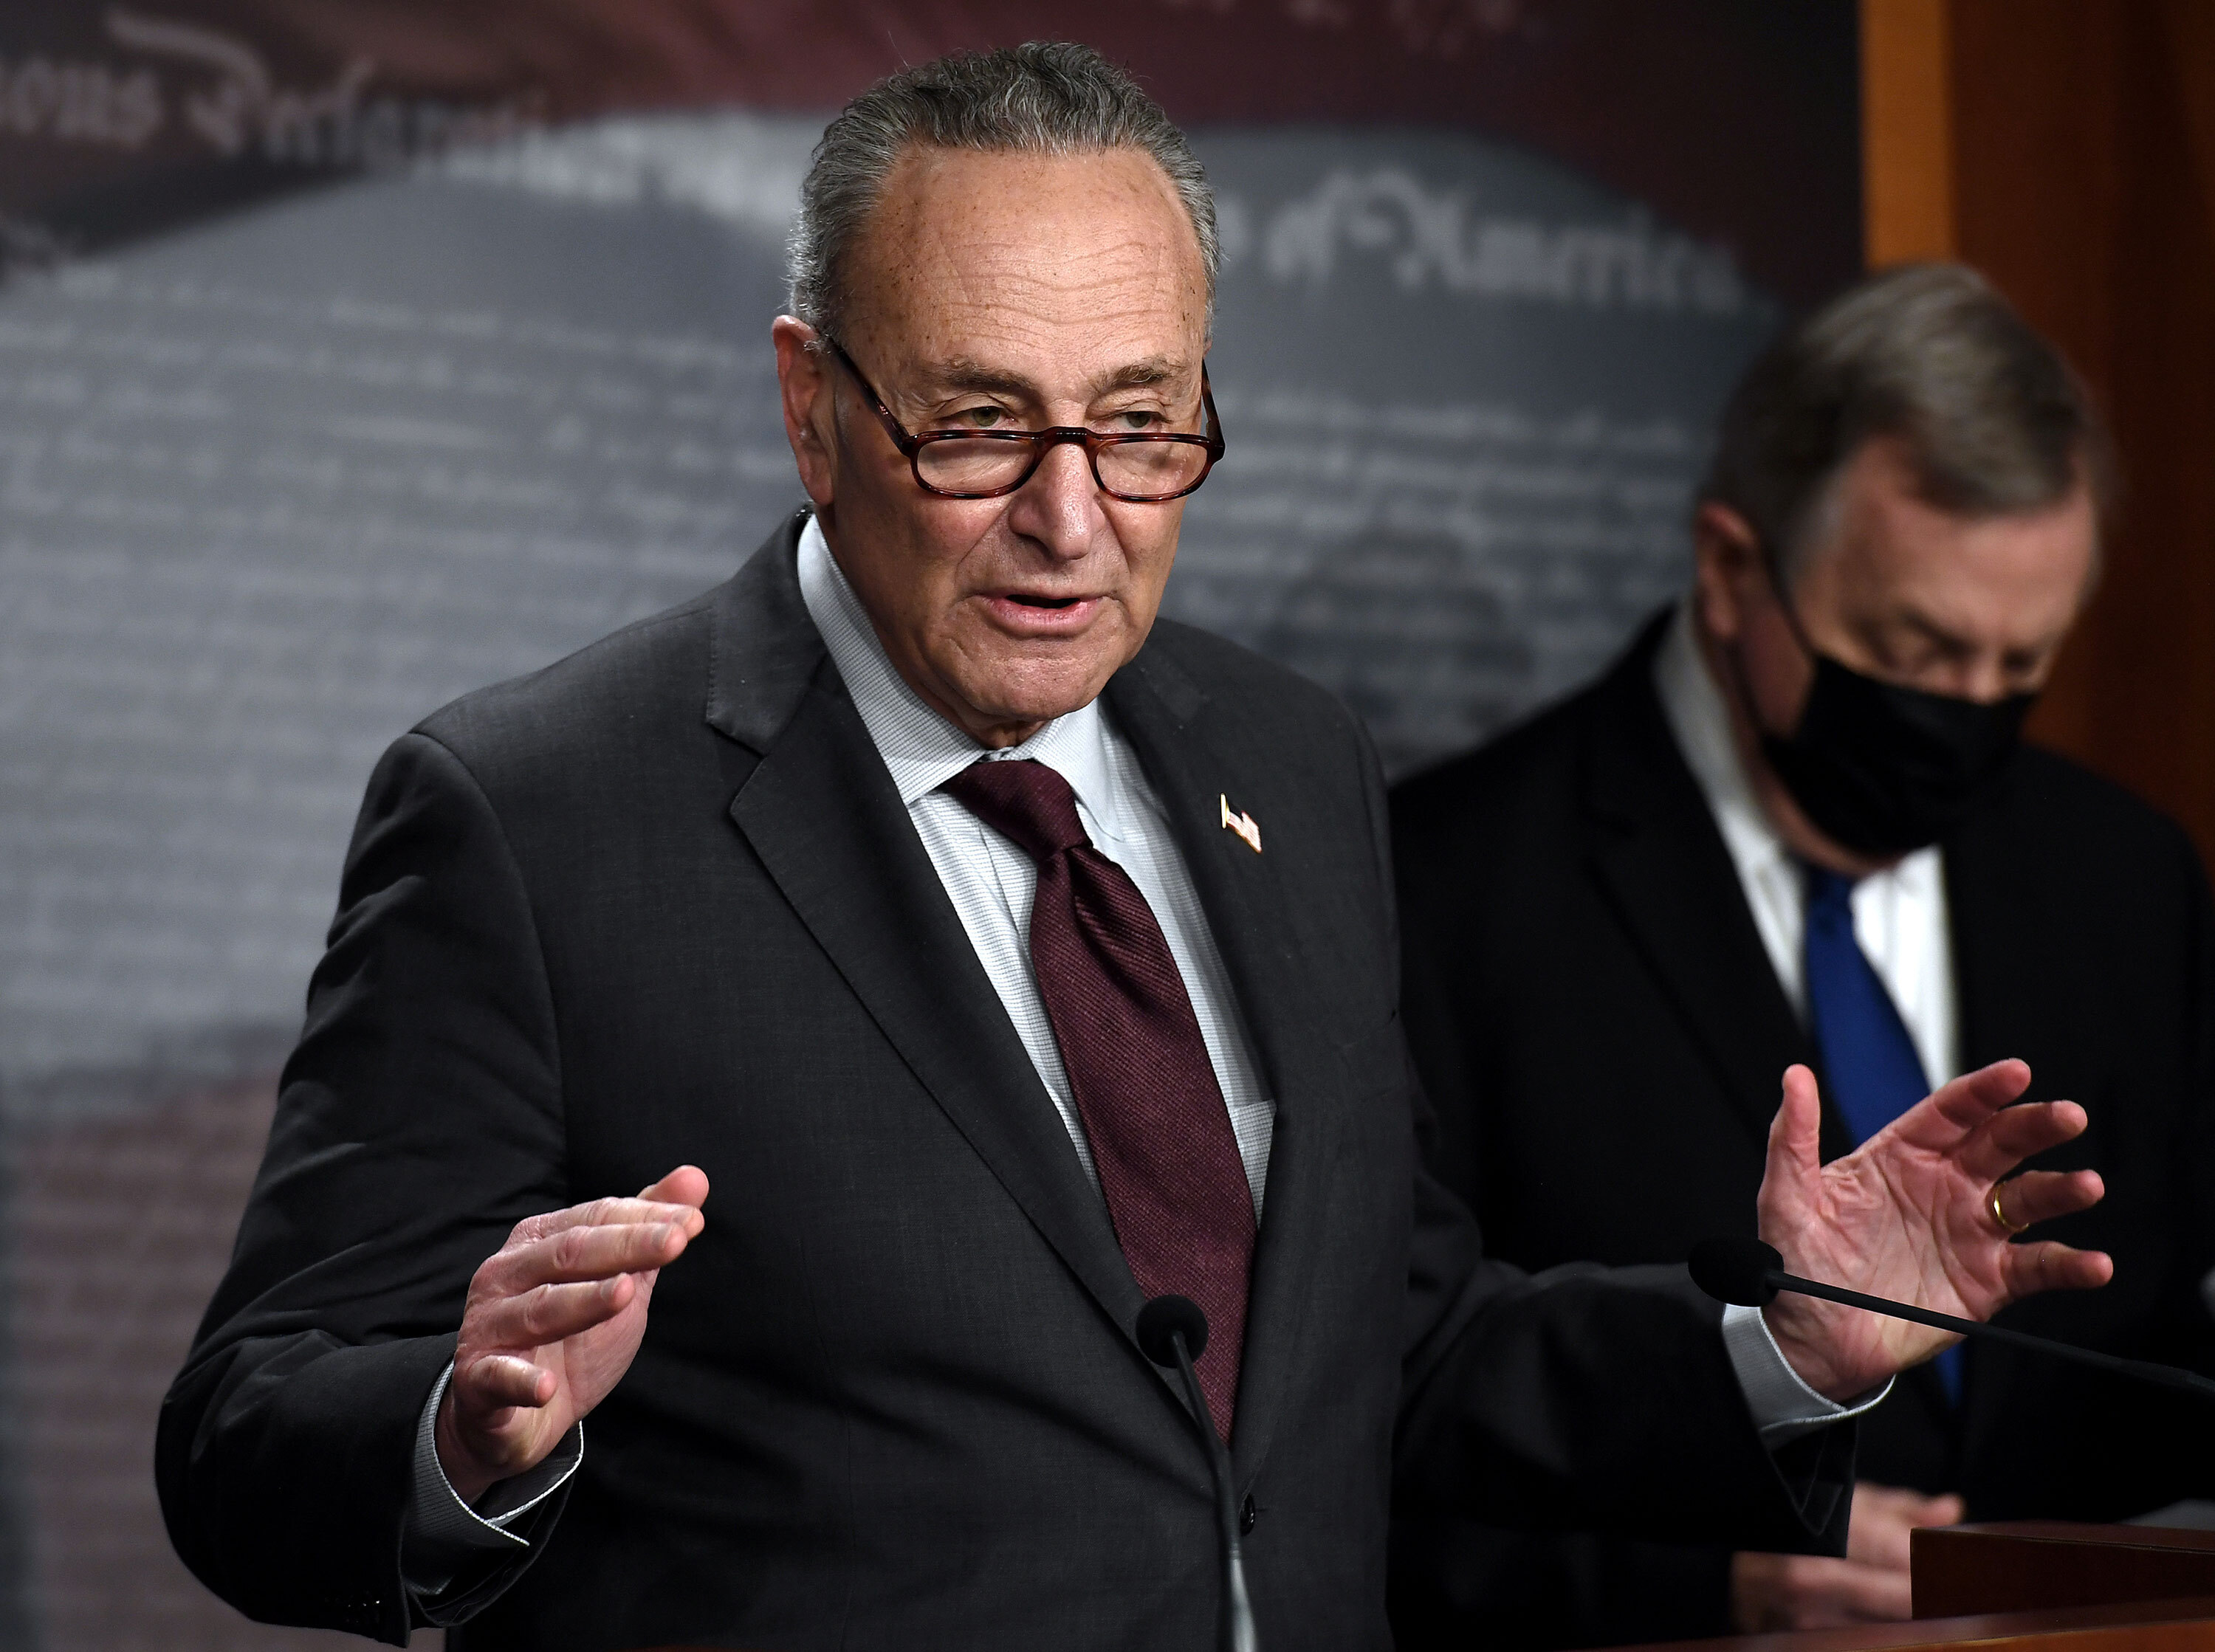 Senate Majority Leader Chuck Schumer speaks during a press conference at the US Capitol on February 2 in Washington, DC.